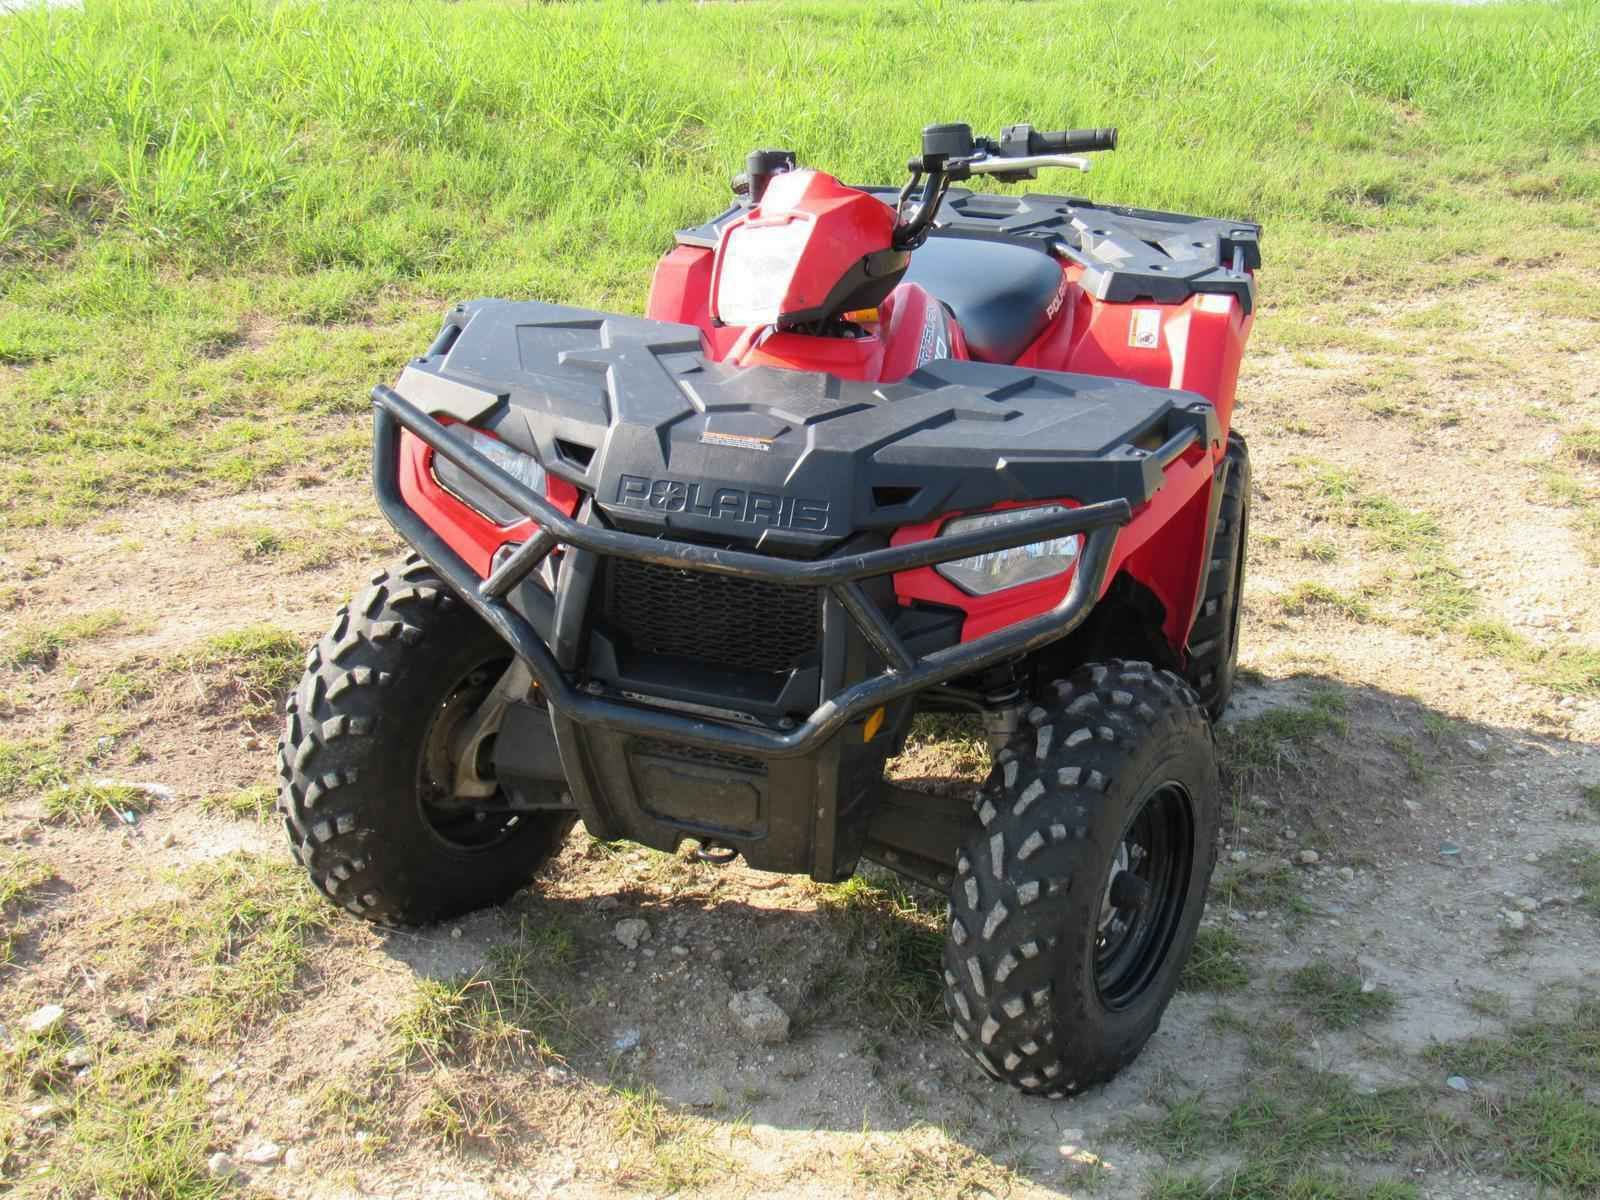 Used 2014 polaris sportsman 570 efi atvs for sale in texas 2014 used 2014 polaris sportsman 570 efi atvs for sale in texas 2014 polaris sportsman 570 publicscrutiny Gallery